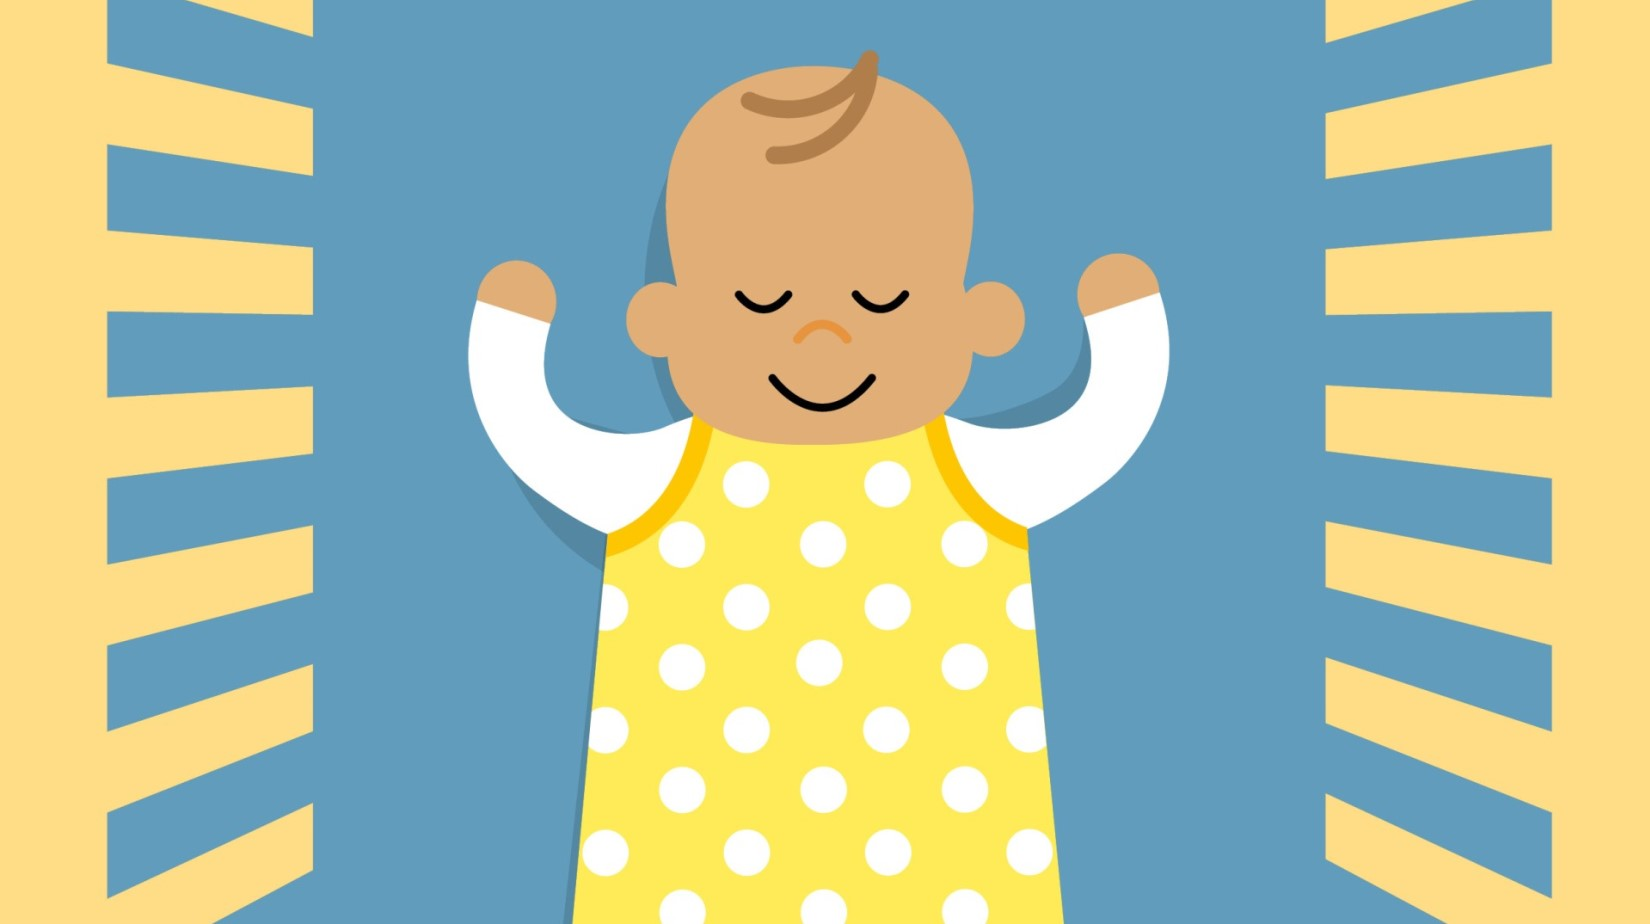 How To Reduce The Risk Of Sids For Your Baby The Lullaby